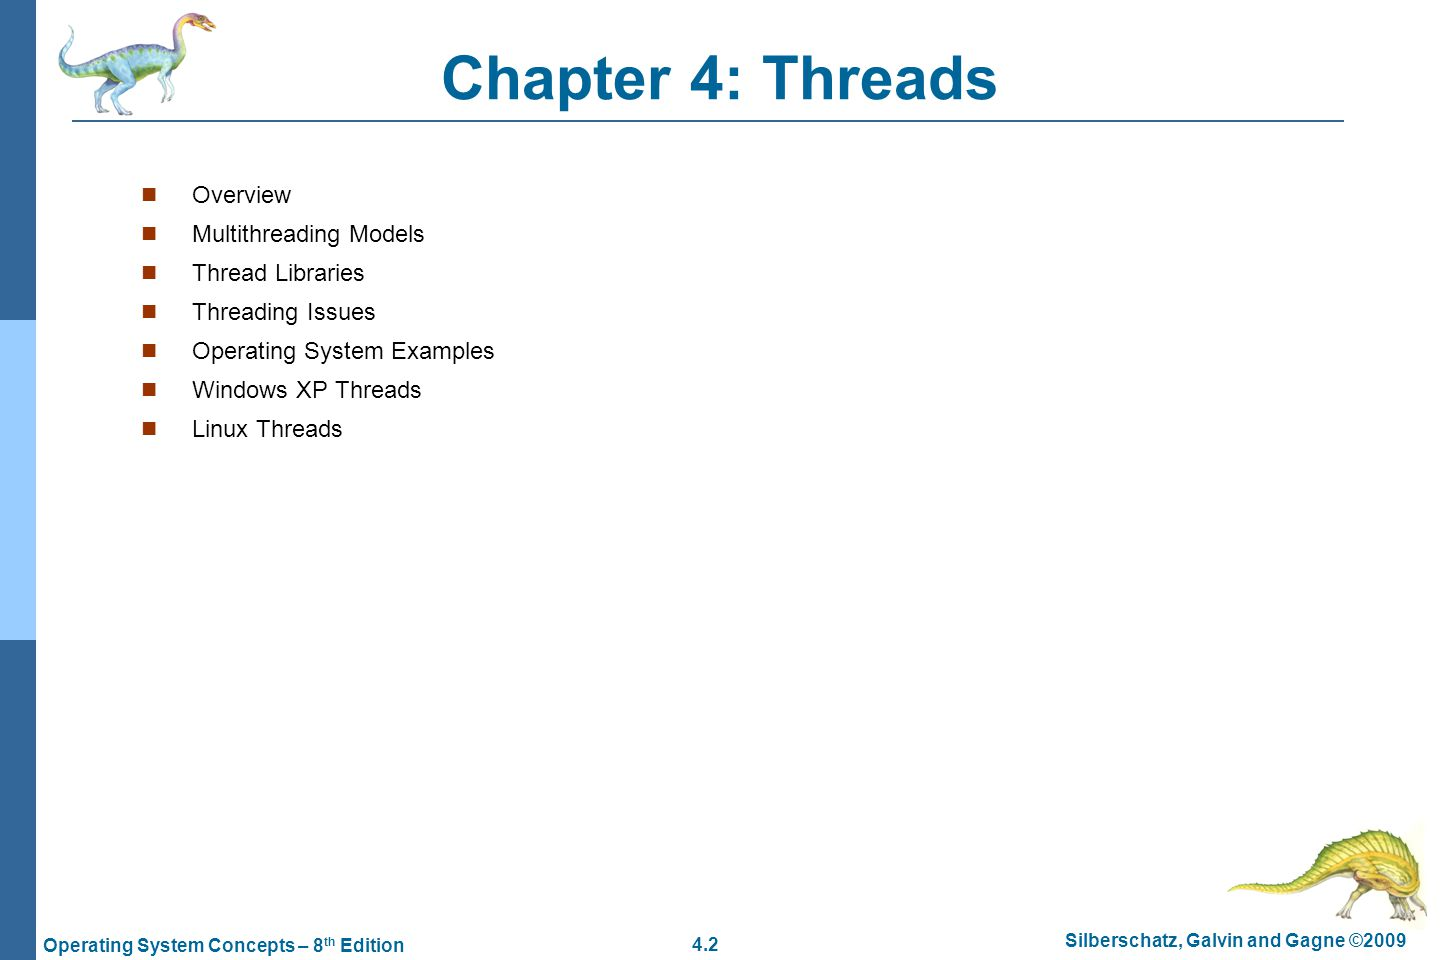 4.2 Silberschatz, Galvin and Gagne ©2009 Operating System Concepts – 8 th Edition Chapter 4: Threads Overview Multithreading Models Thread Libraries Threading Issues Operating System Examples Windows XP Threads Linux Threads